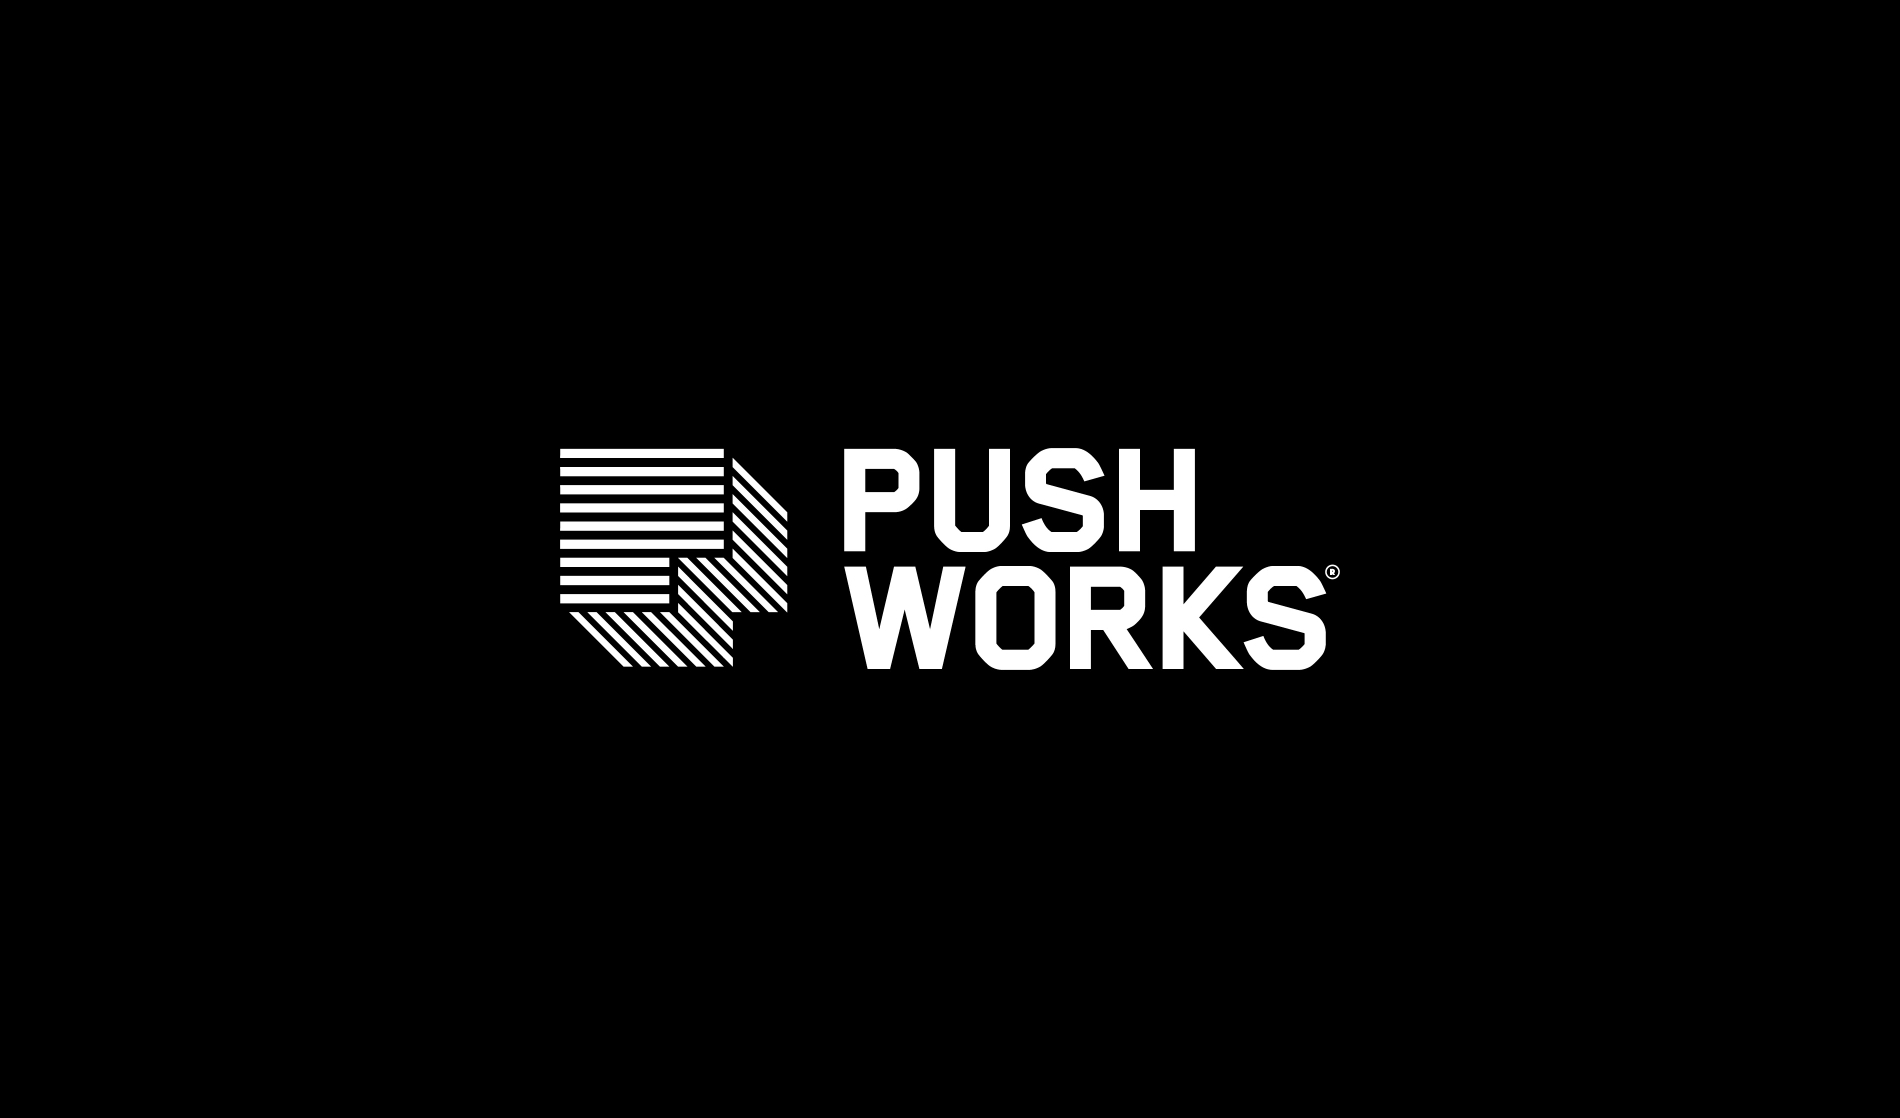 Pushworks